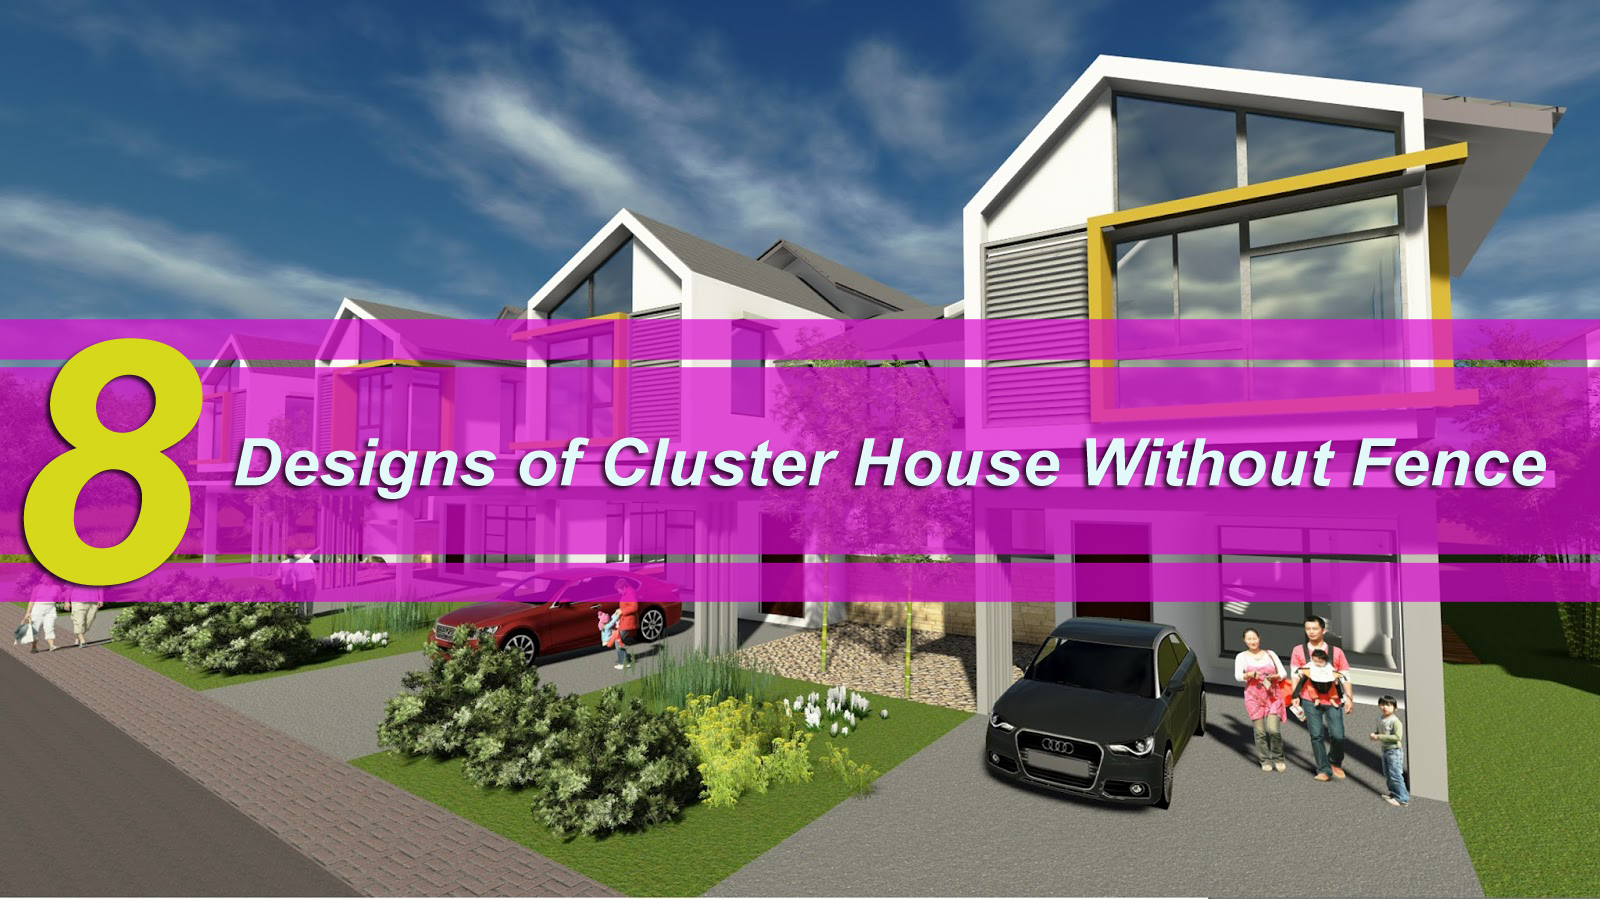 8 Designs of Cluster House Without Fence - Matchness.com